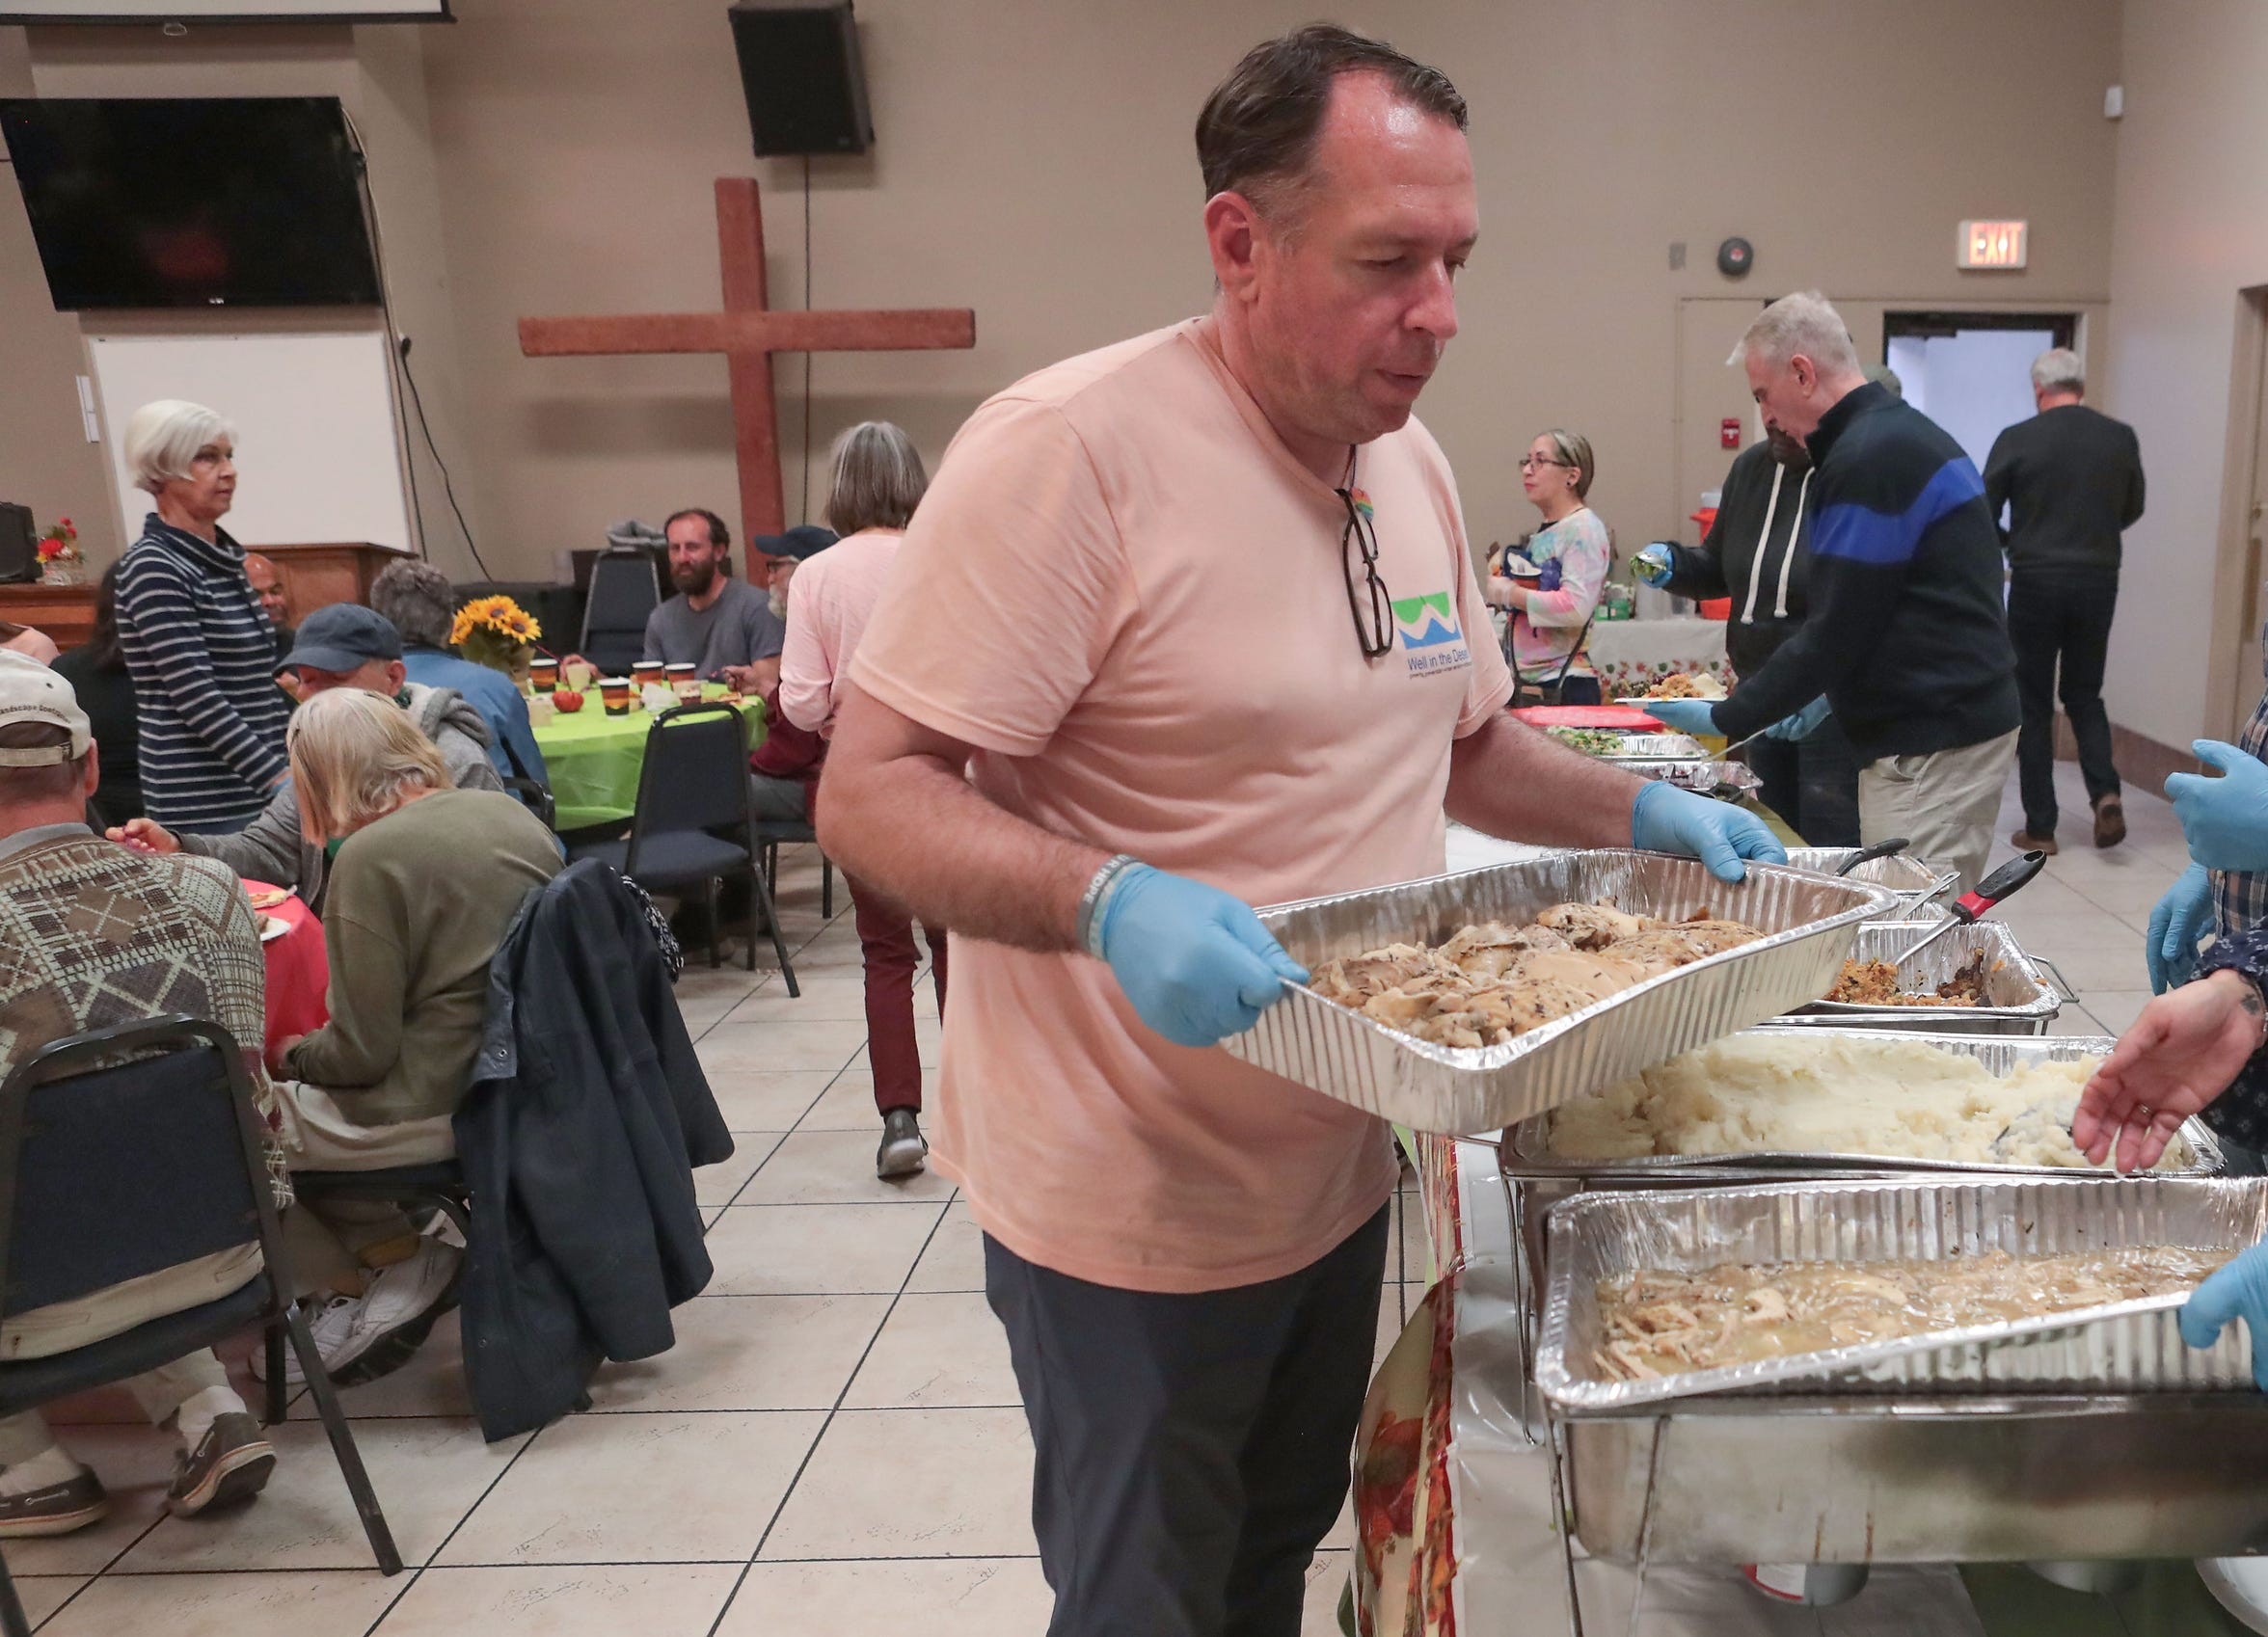 Philven Sitton volunteers with Well in the Desert as they serve Thanksgiving meals at Our Lady of Solitude Church in Palm Springs, November 28, 2019.